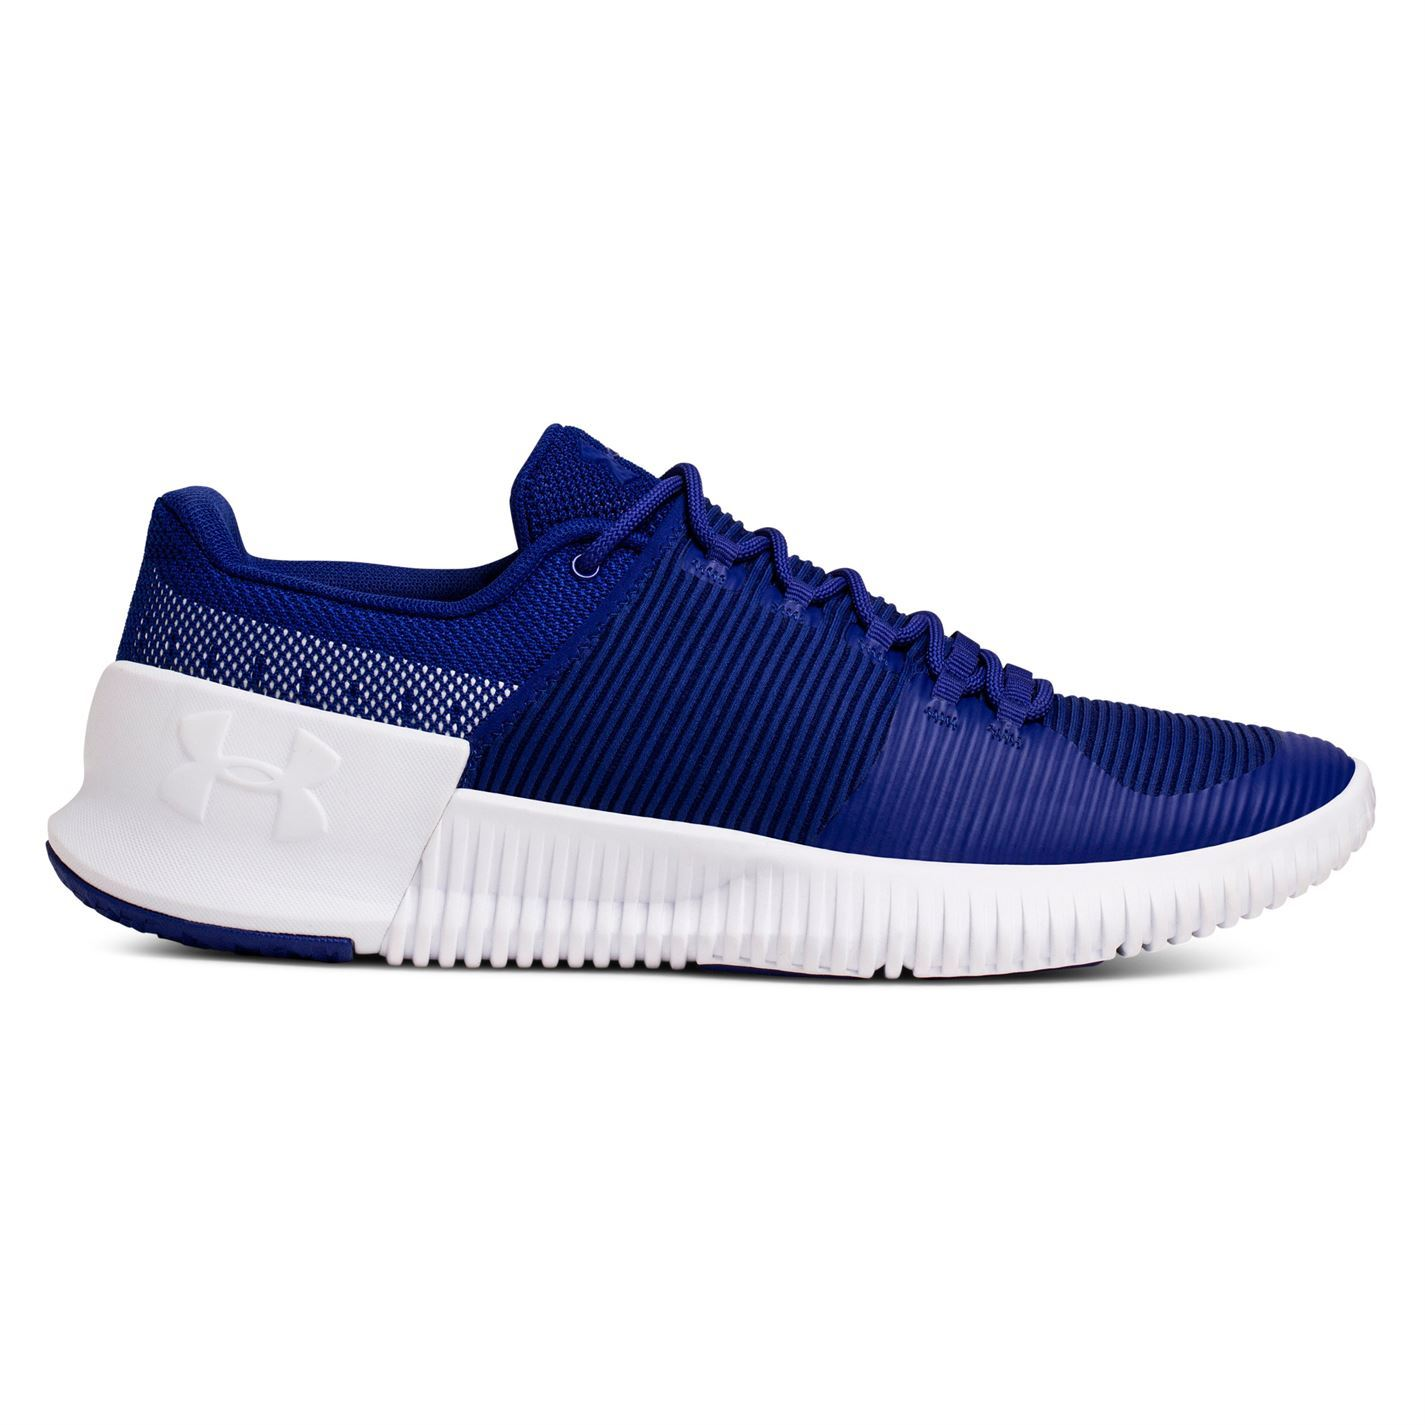 Velocidad Zapatillas Trote Armour Fitness Under Running Ultimate Hombre f4RwAxE